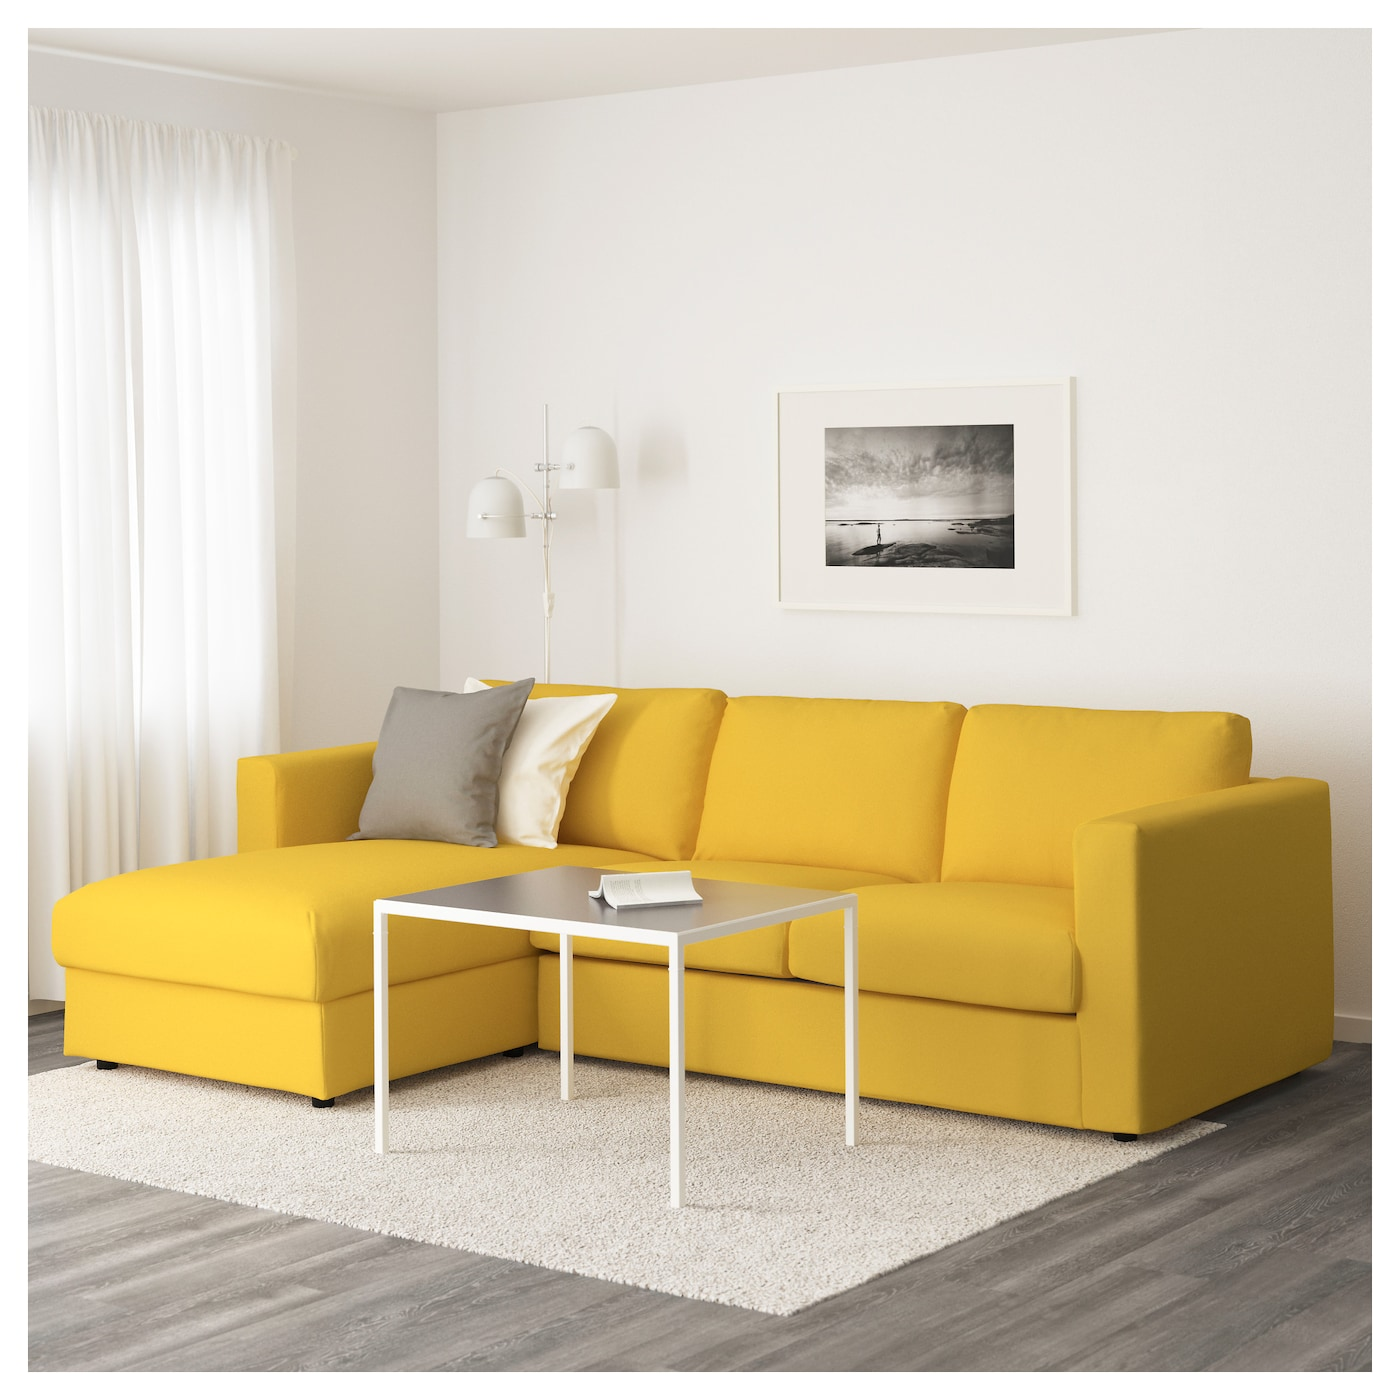 Vimle 3 seat sofa with chaise longue gr sbo golden yellow - Sofas chaise longue medidas ...